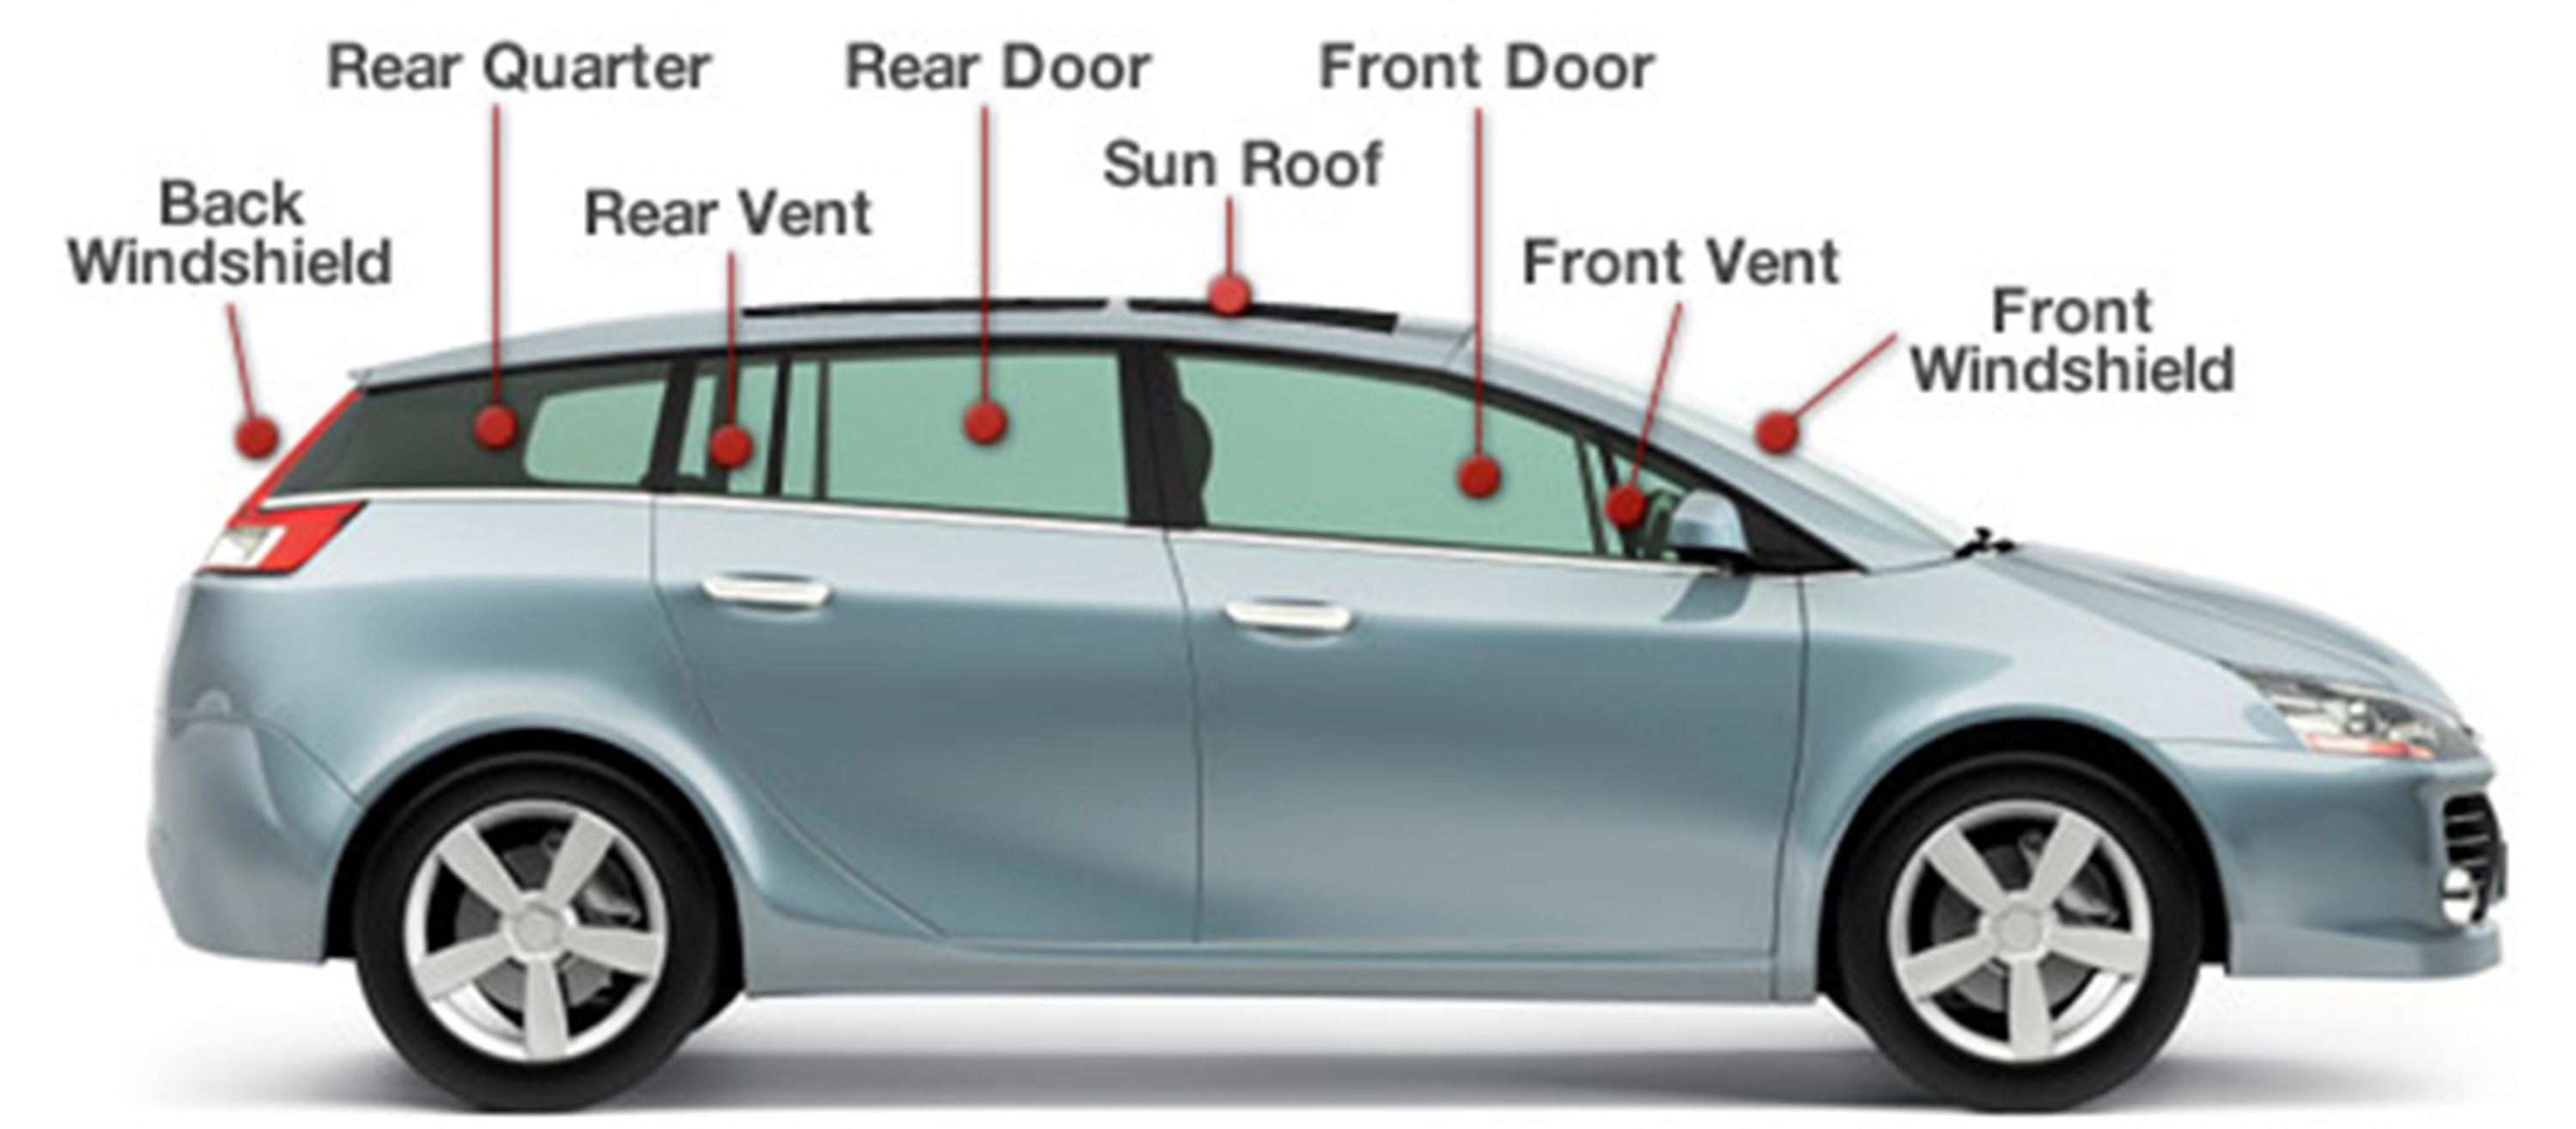 Parts Of A Car Front Windshield